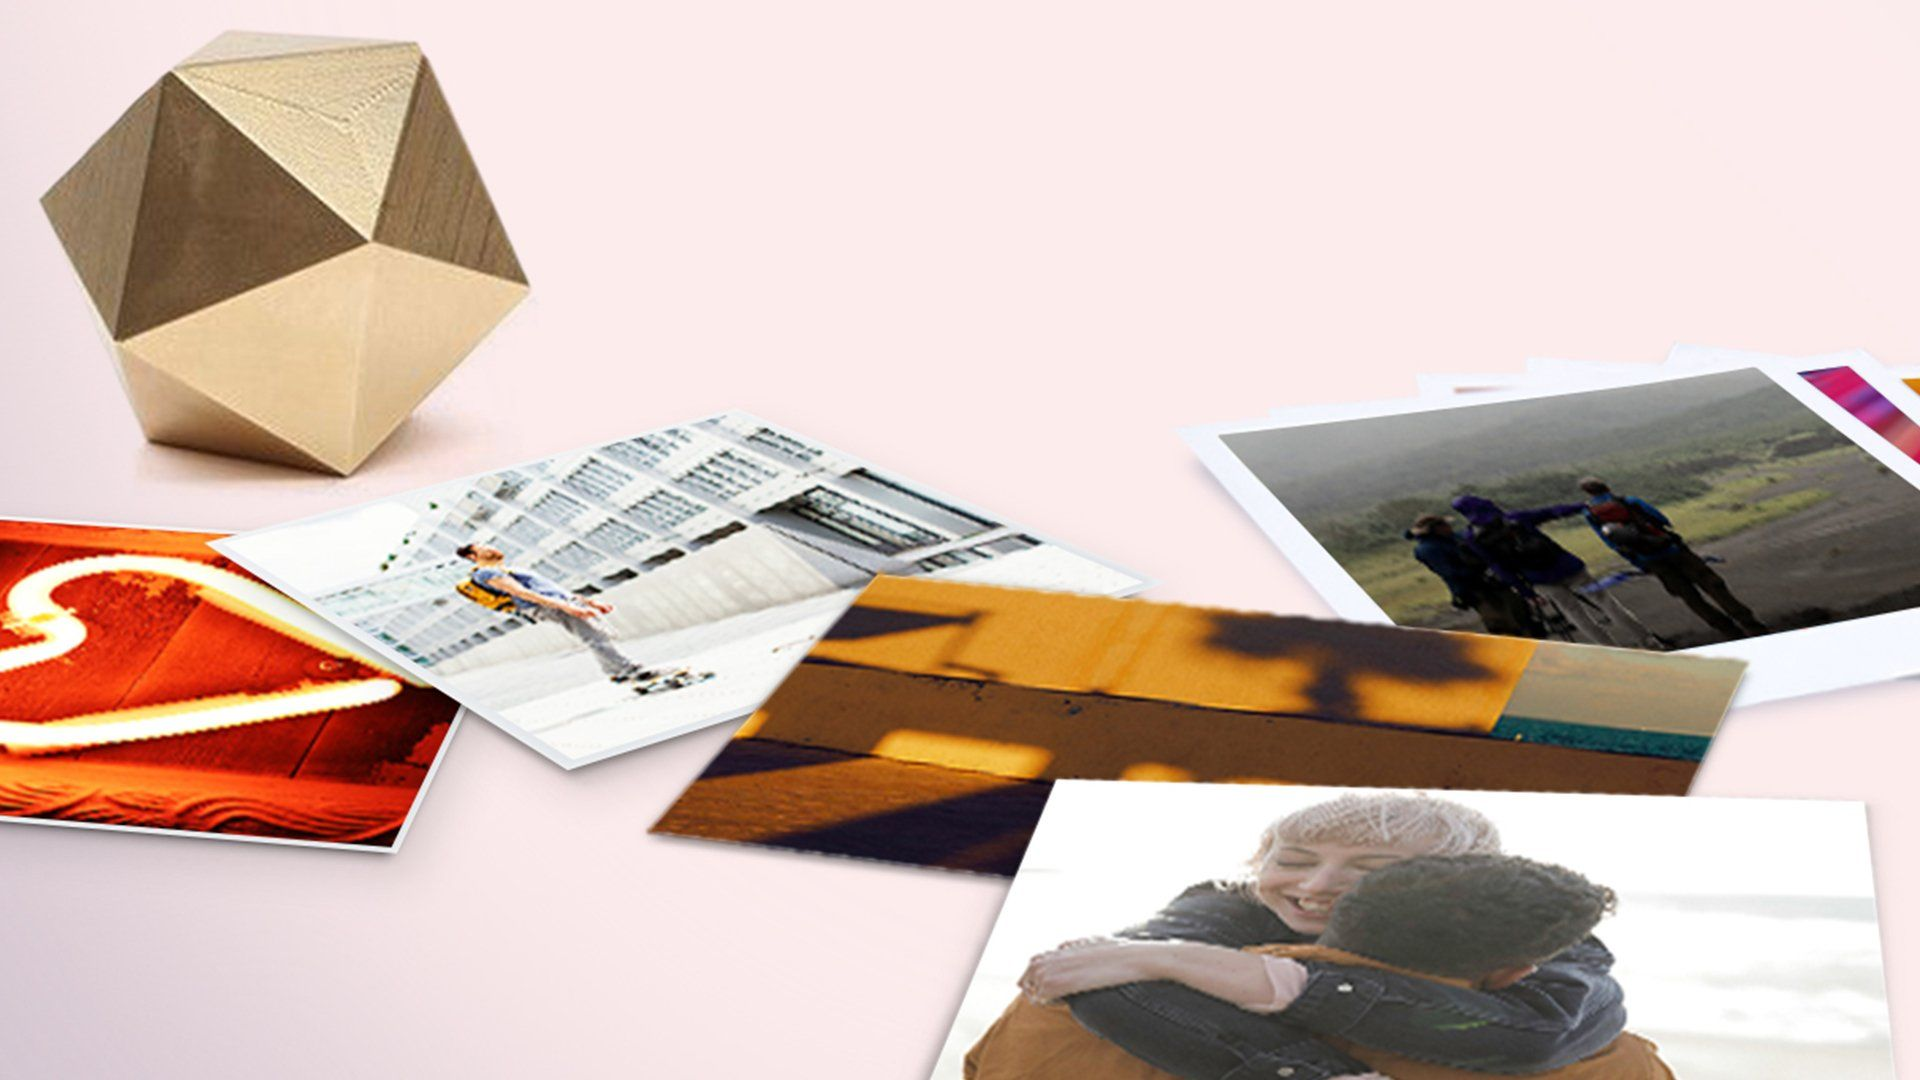 A cluster of prints showing some memorable imagery ranging from relationships to journeys.